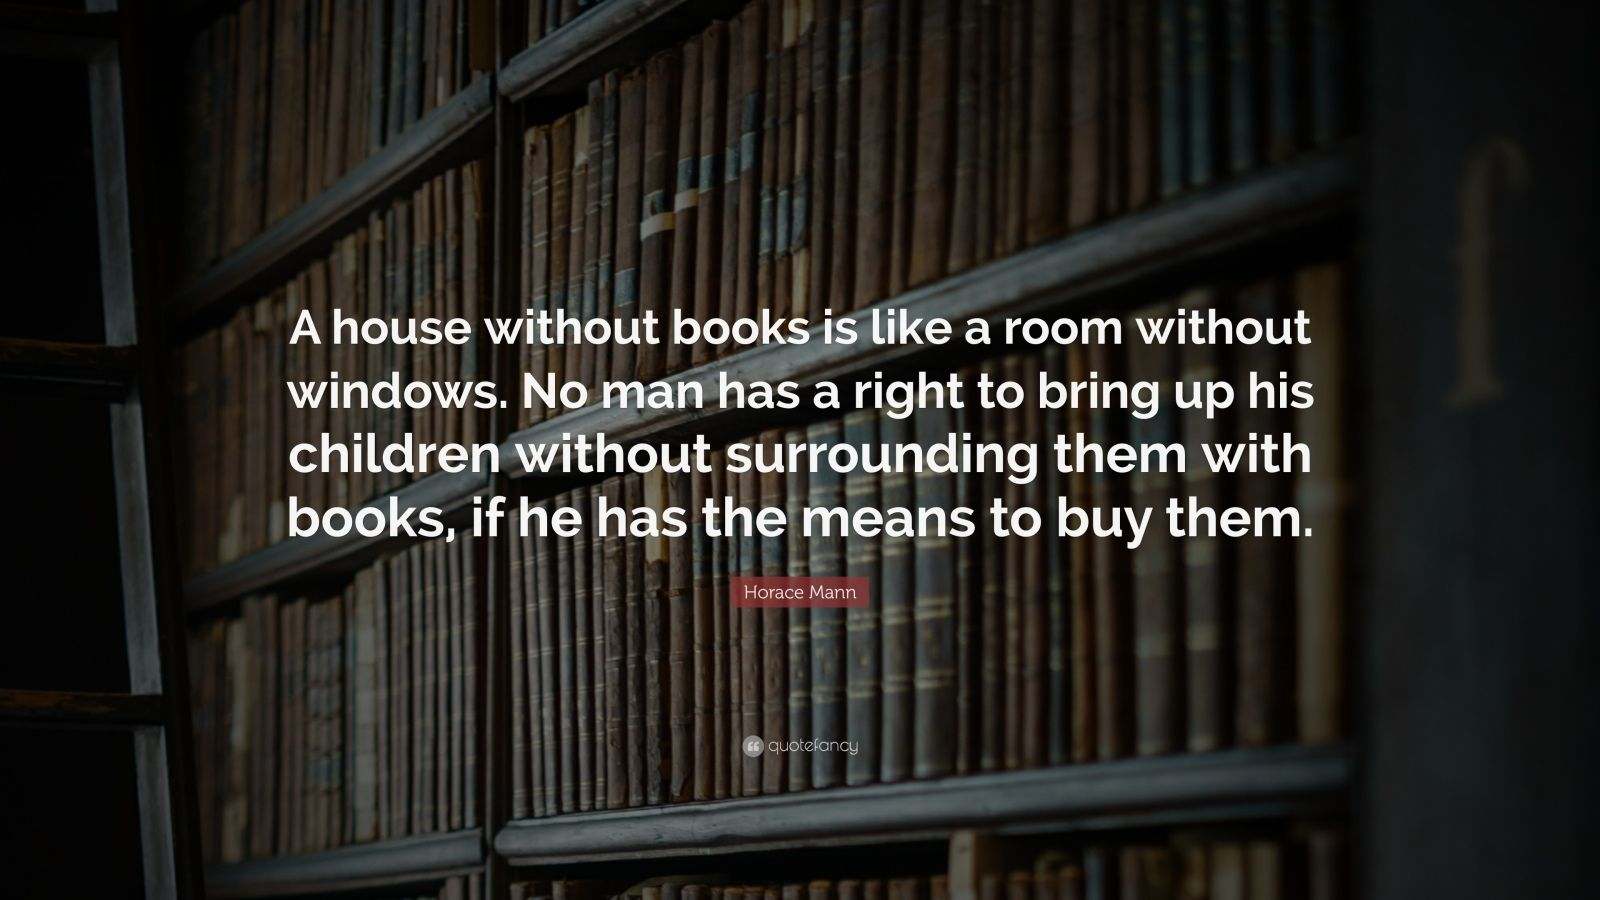 """Horace Mann Quote: """"A house without books is like a room without windows. No man has a right to bring up his children without surrounding them with books, if he has the means to buy them."""""""